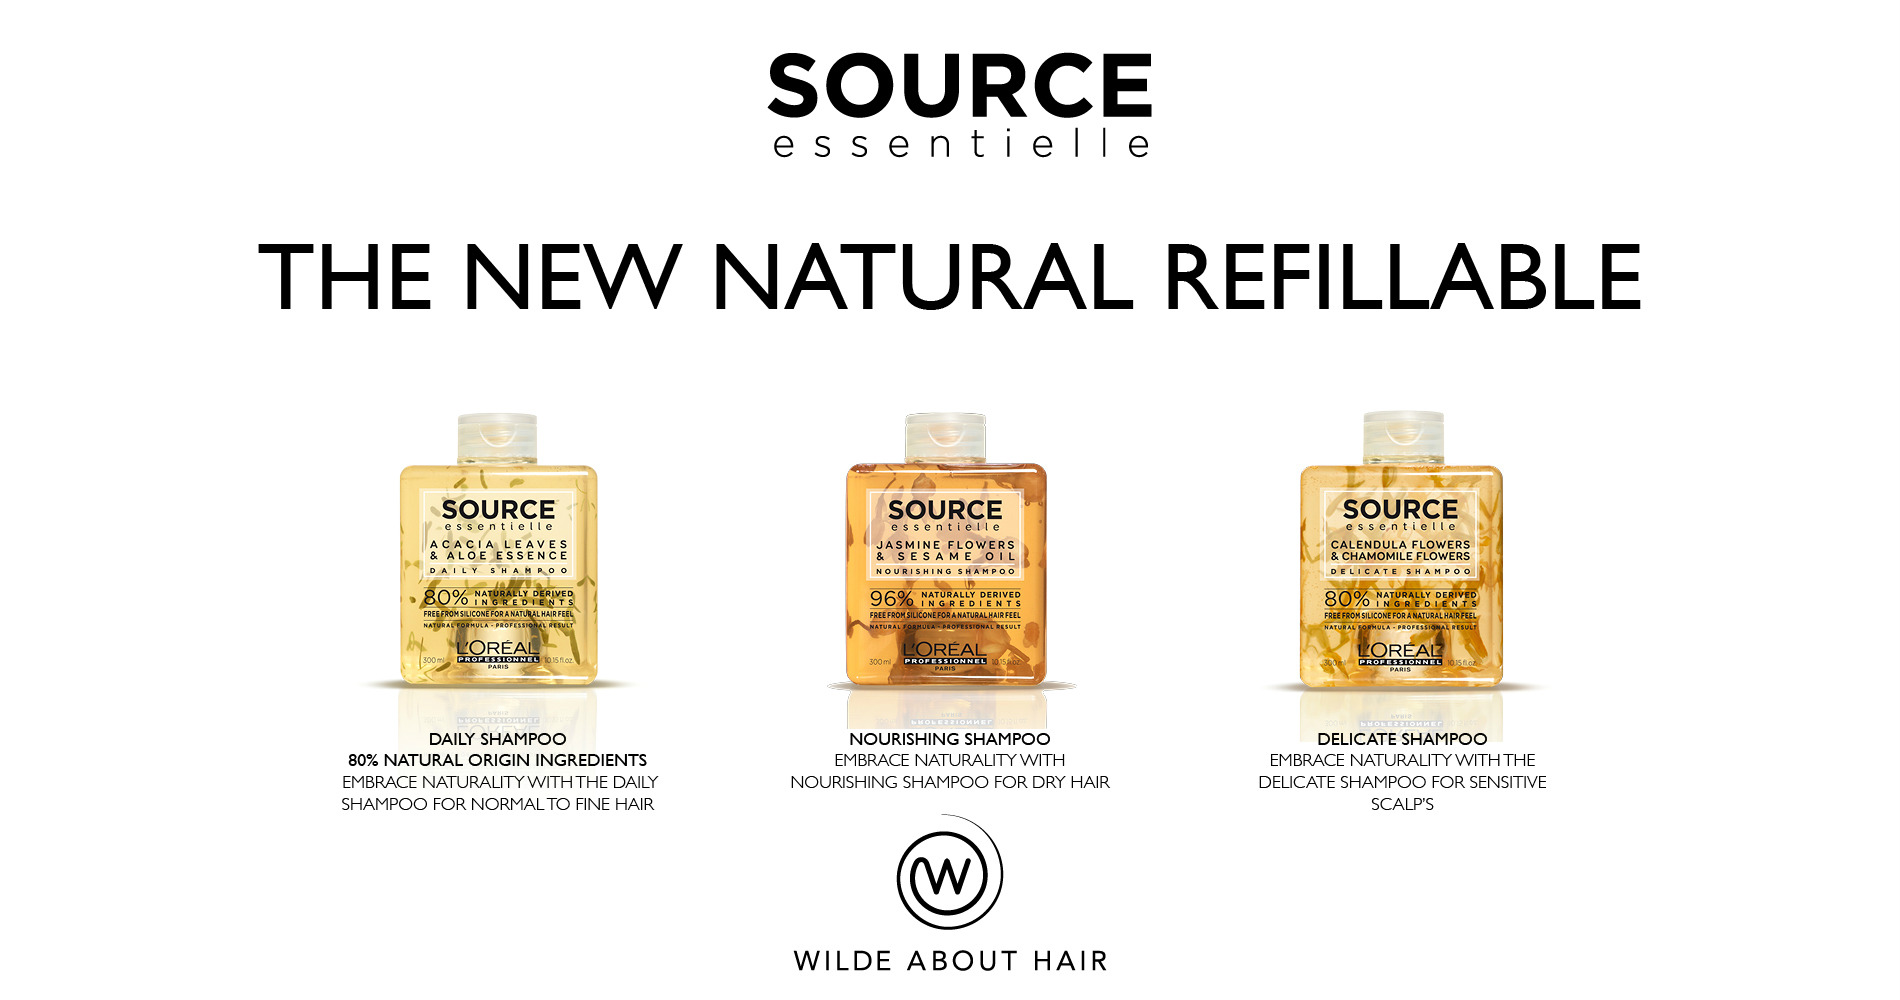 Source Essentielle - the new natural refillable